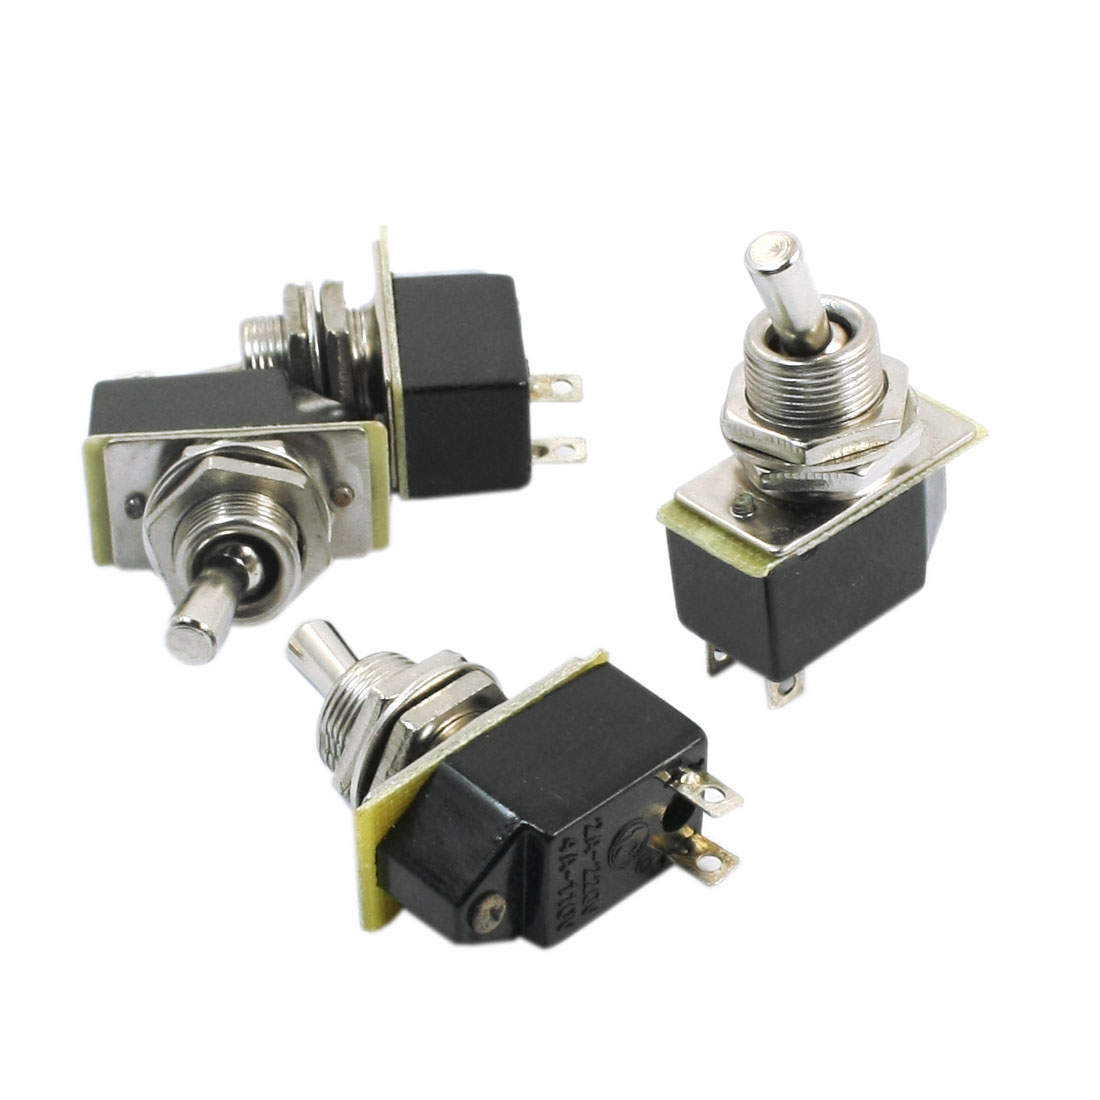 AC 110V 4A ON/OFF 2 Positions 2 Terminals Self Locking Toggle Switch Black 4pcs